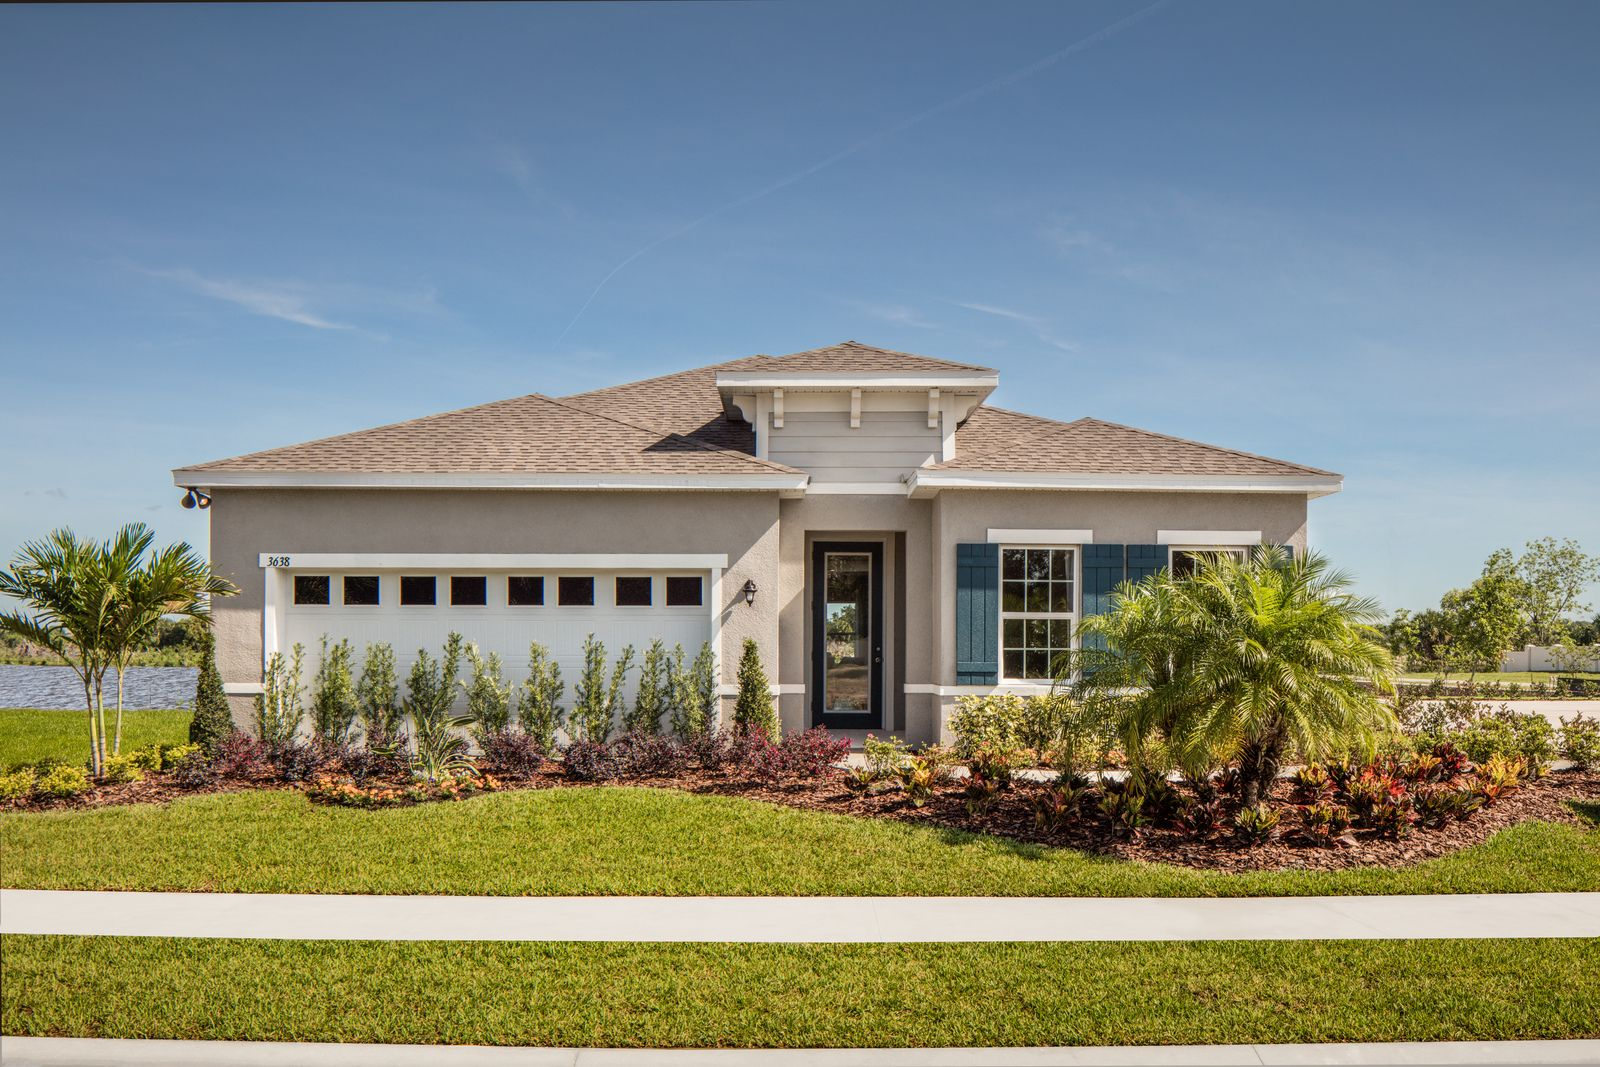 Welcome to Kensington Reserve in Sanford, FL:Own a brand new single-family home in a beautifully amenitized gated community from the upper $200s on the Sanford-Lake Mary border.Schedule a visit today to learn more!